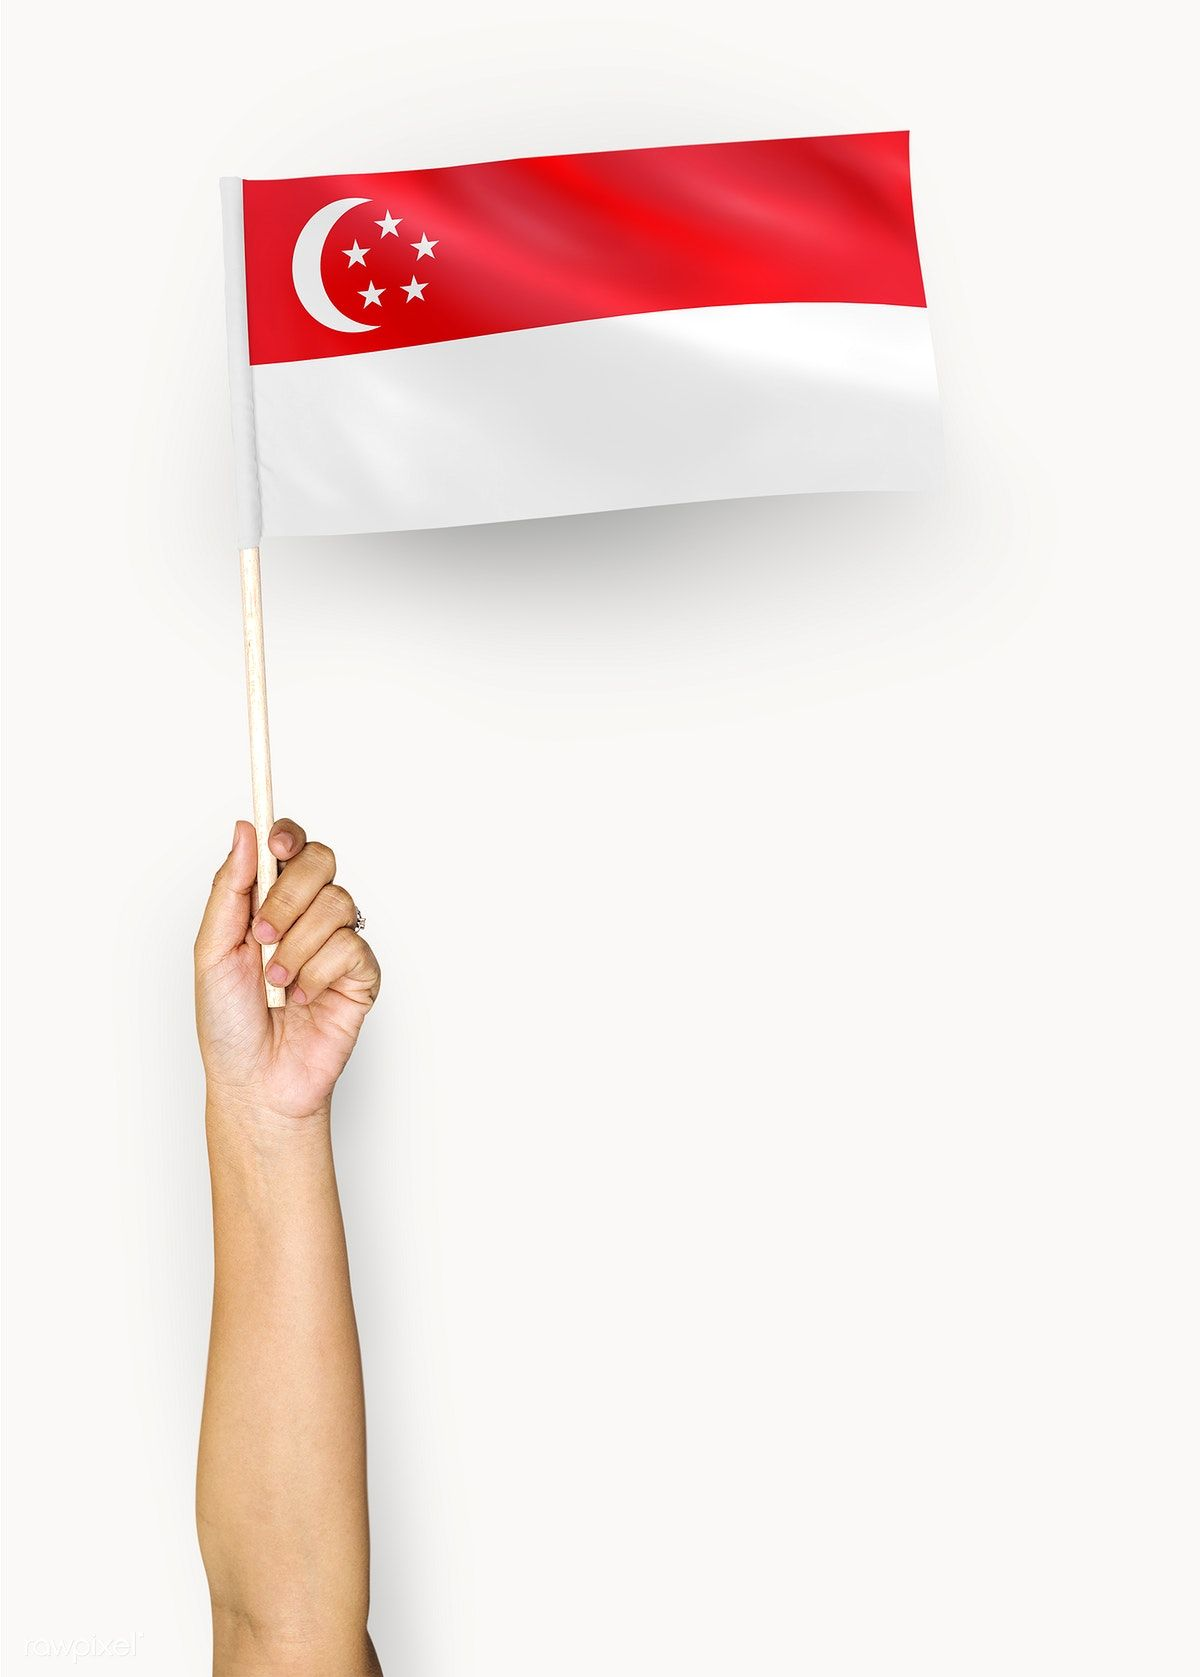 Person Waving The Flag Of Republic Of Singapore Premium Image By Rawpixel Com Flag Singapore Singapore Flag